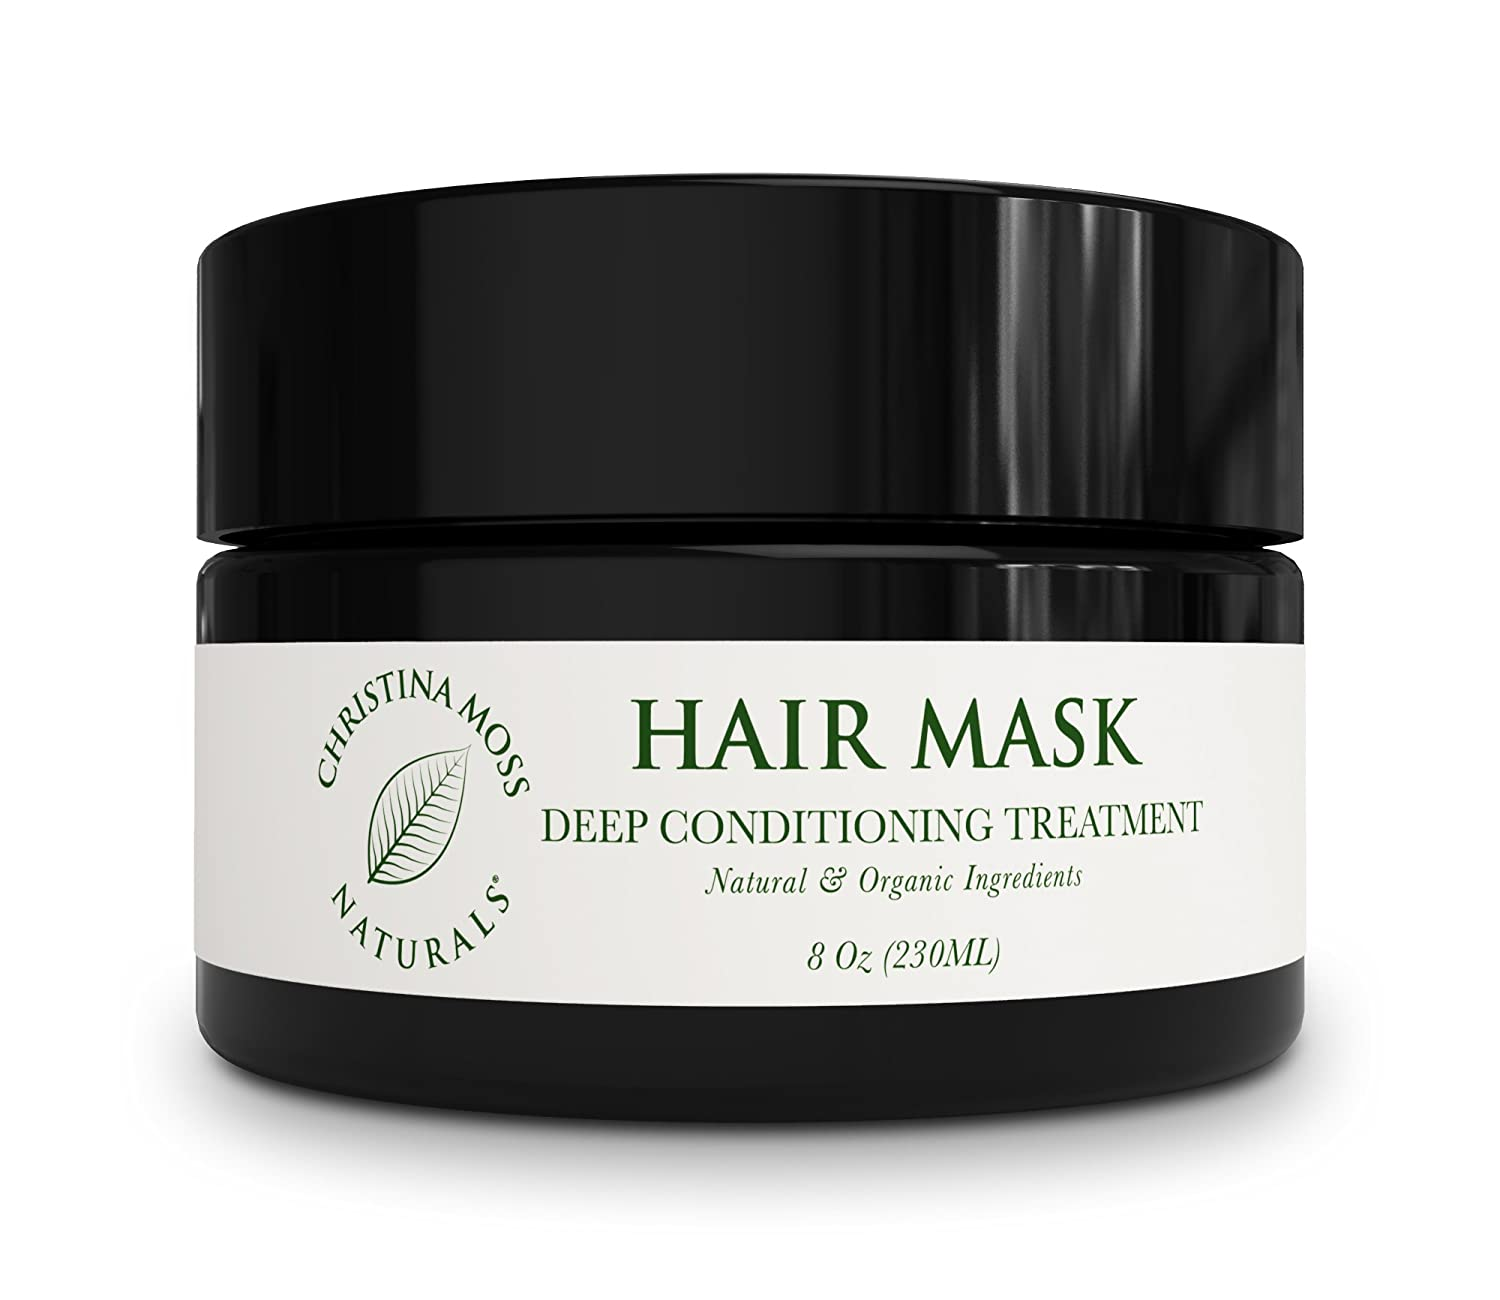 Deep Conditioner Hair Repair Treatment Mask For Damaged, Dry Hair. Rescue Care, Organic & 100% Natural For All Hair Types, Women, Men. Sulfate Free. No Harmful Chemicals. Christina Moss Naturals. 8oz.